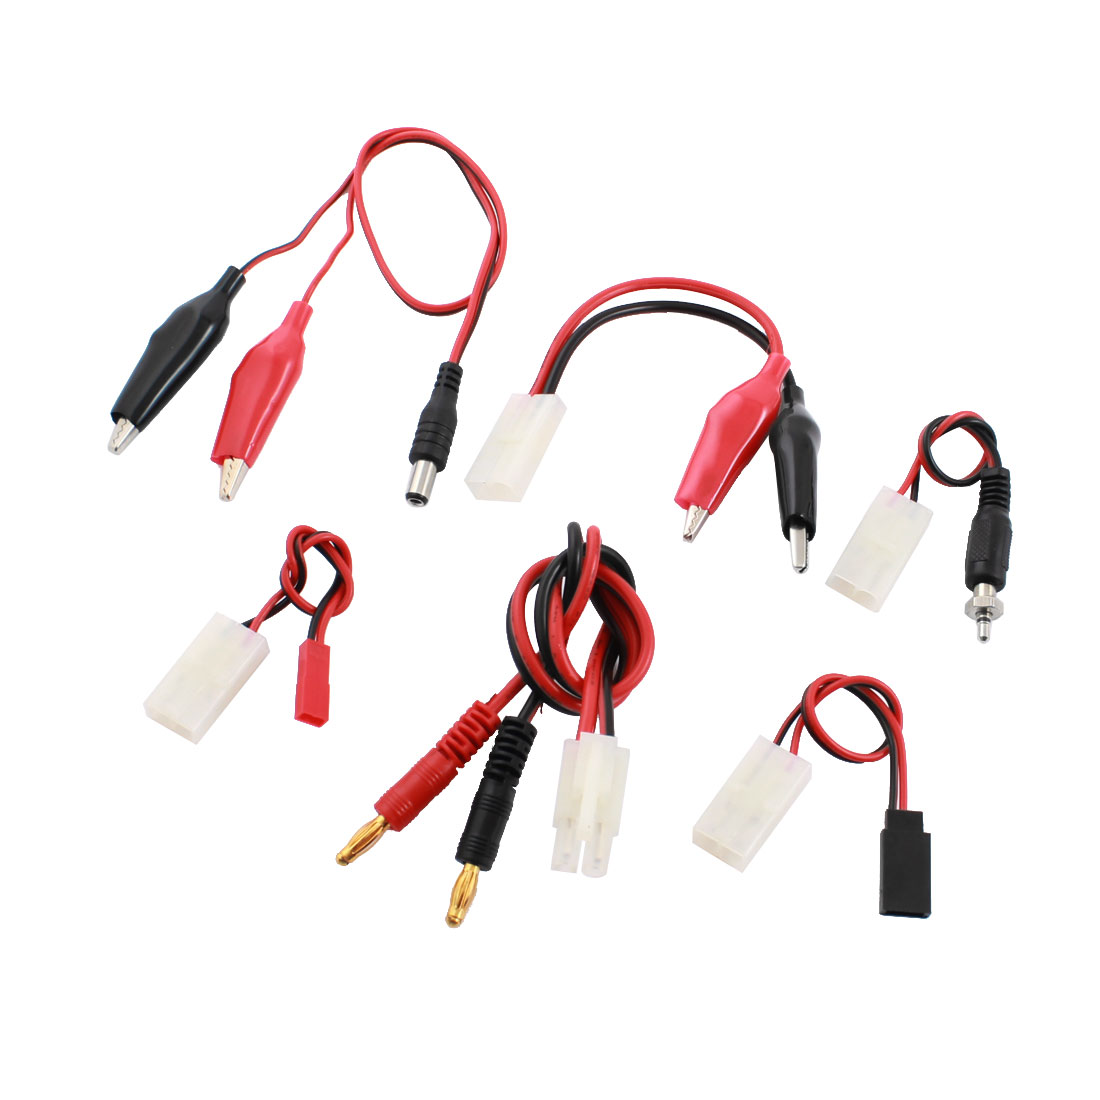 6 in 1 Female to Banana Wire Cable Connector for RC Model Lipo Battery